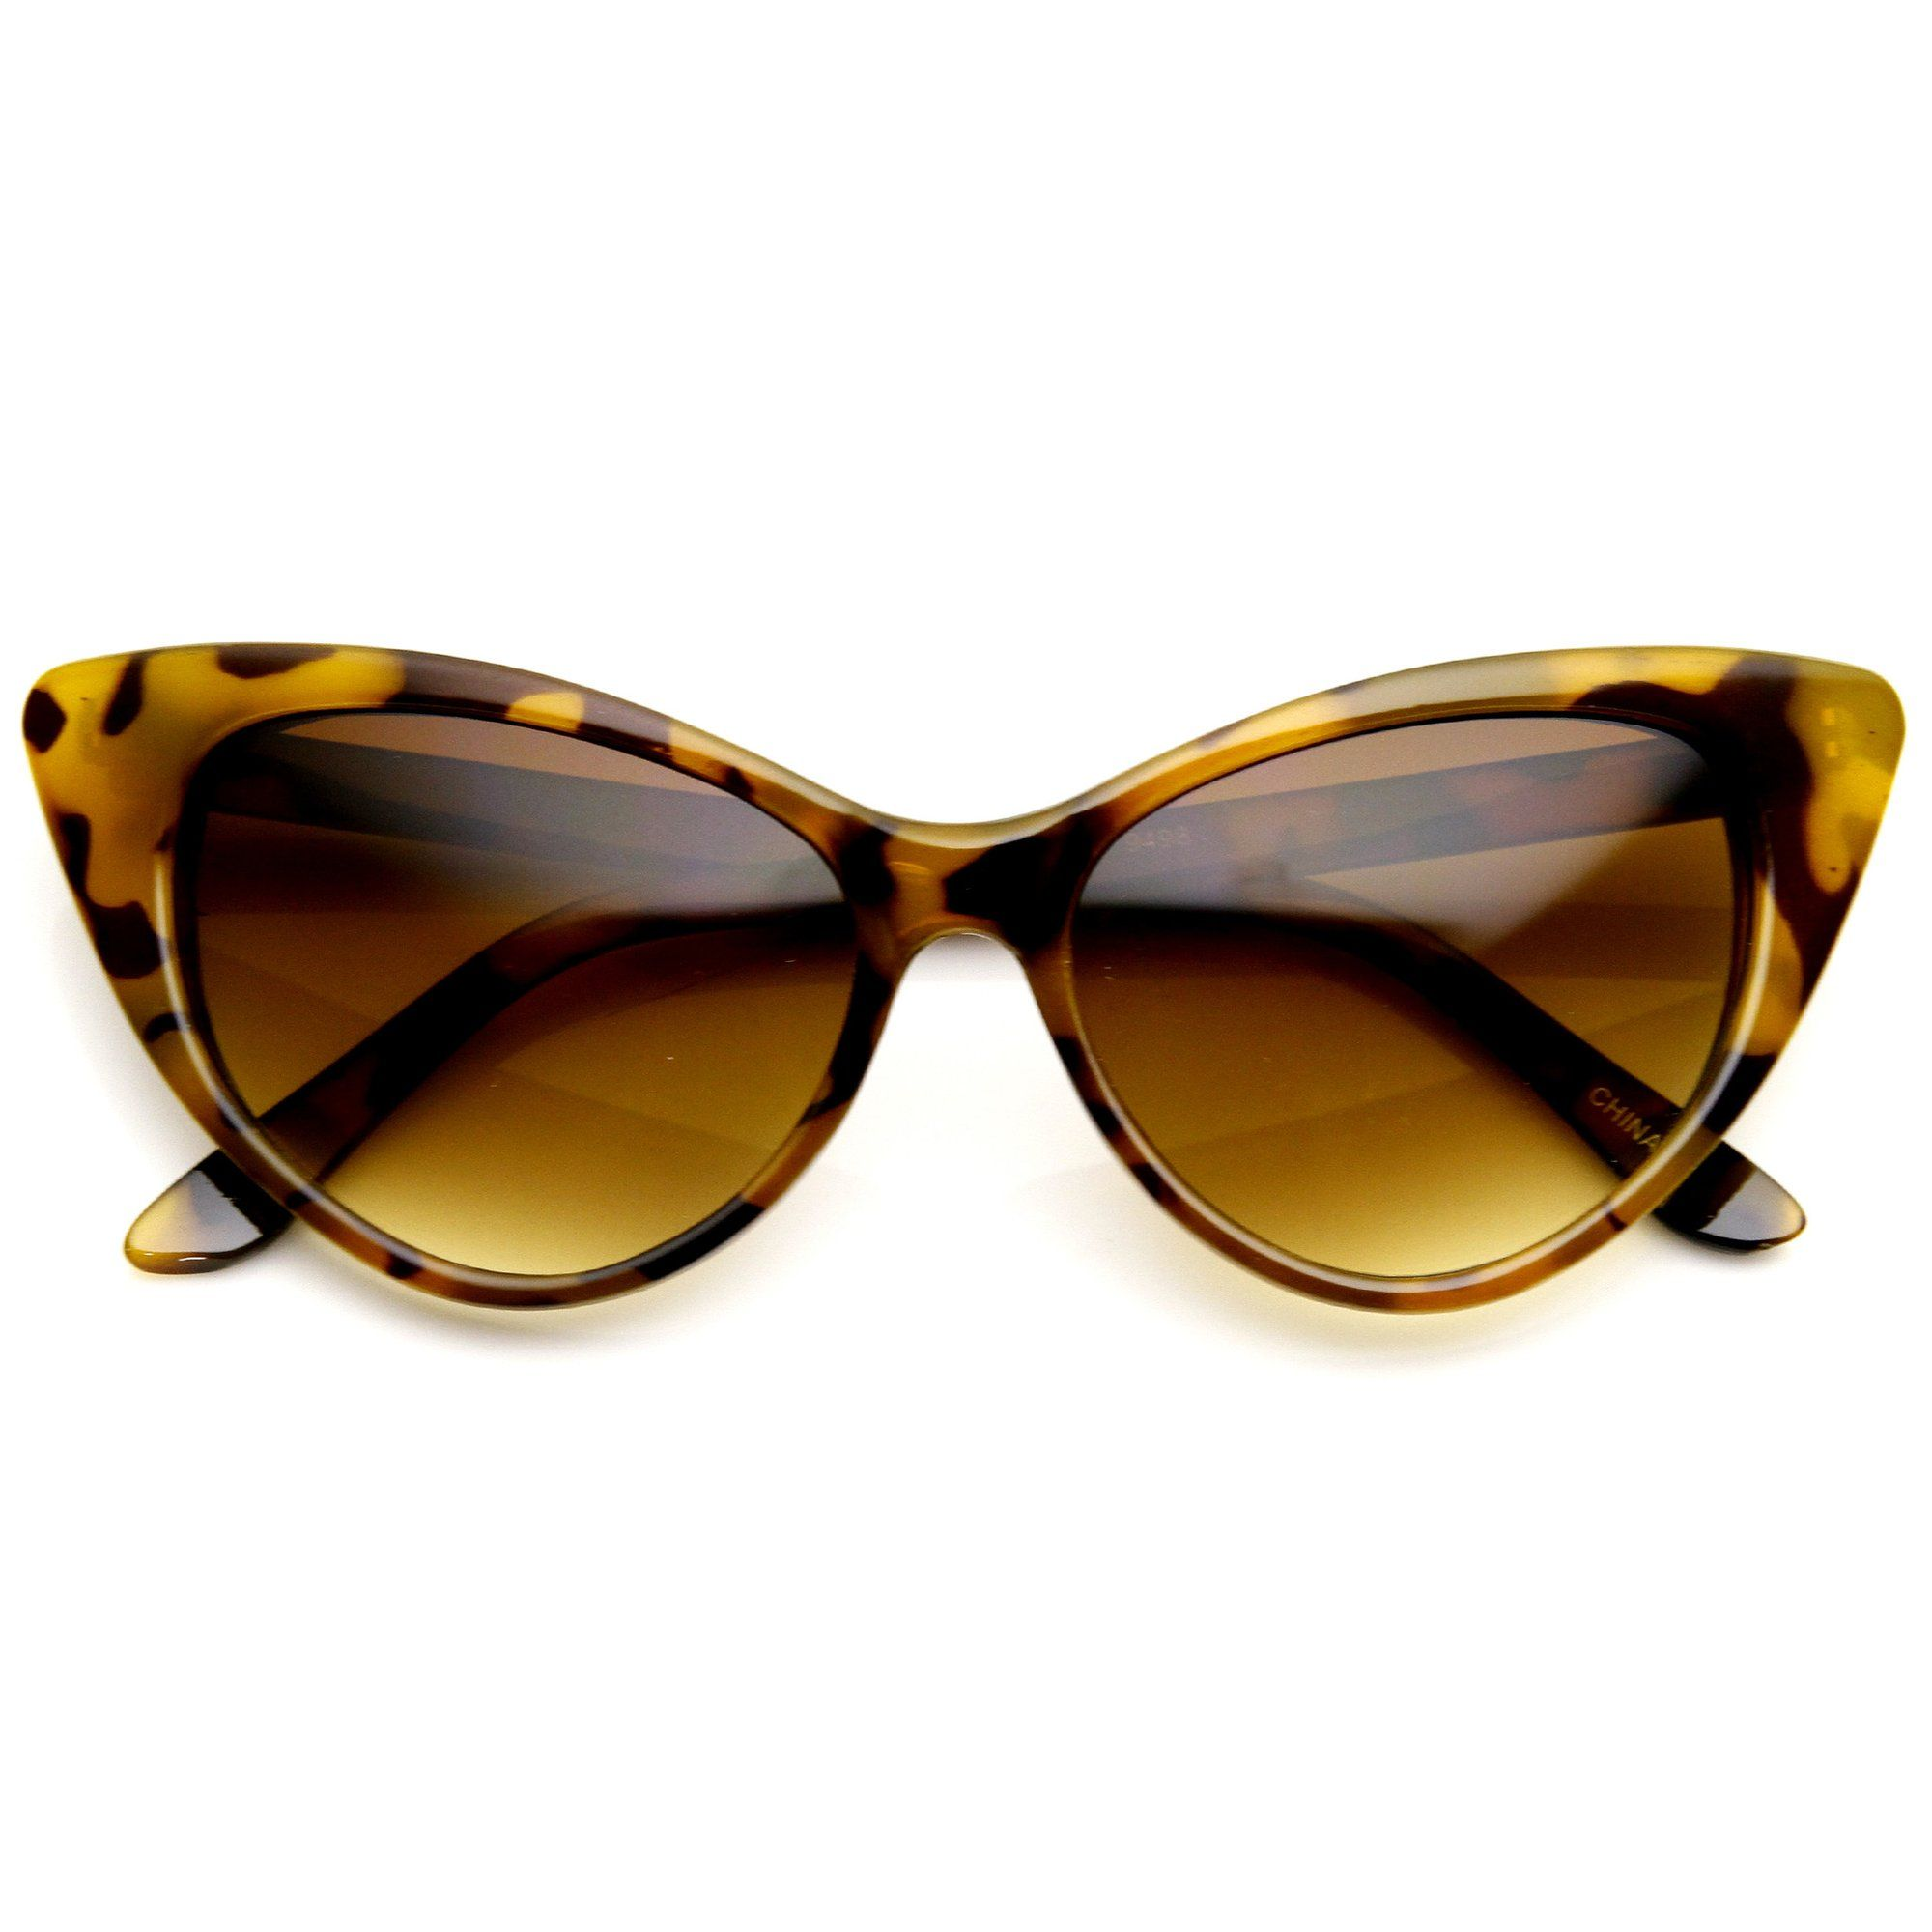 Womens Fashion Hot Tip Pointed Vintage Cat Eye Sunglasses 8371